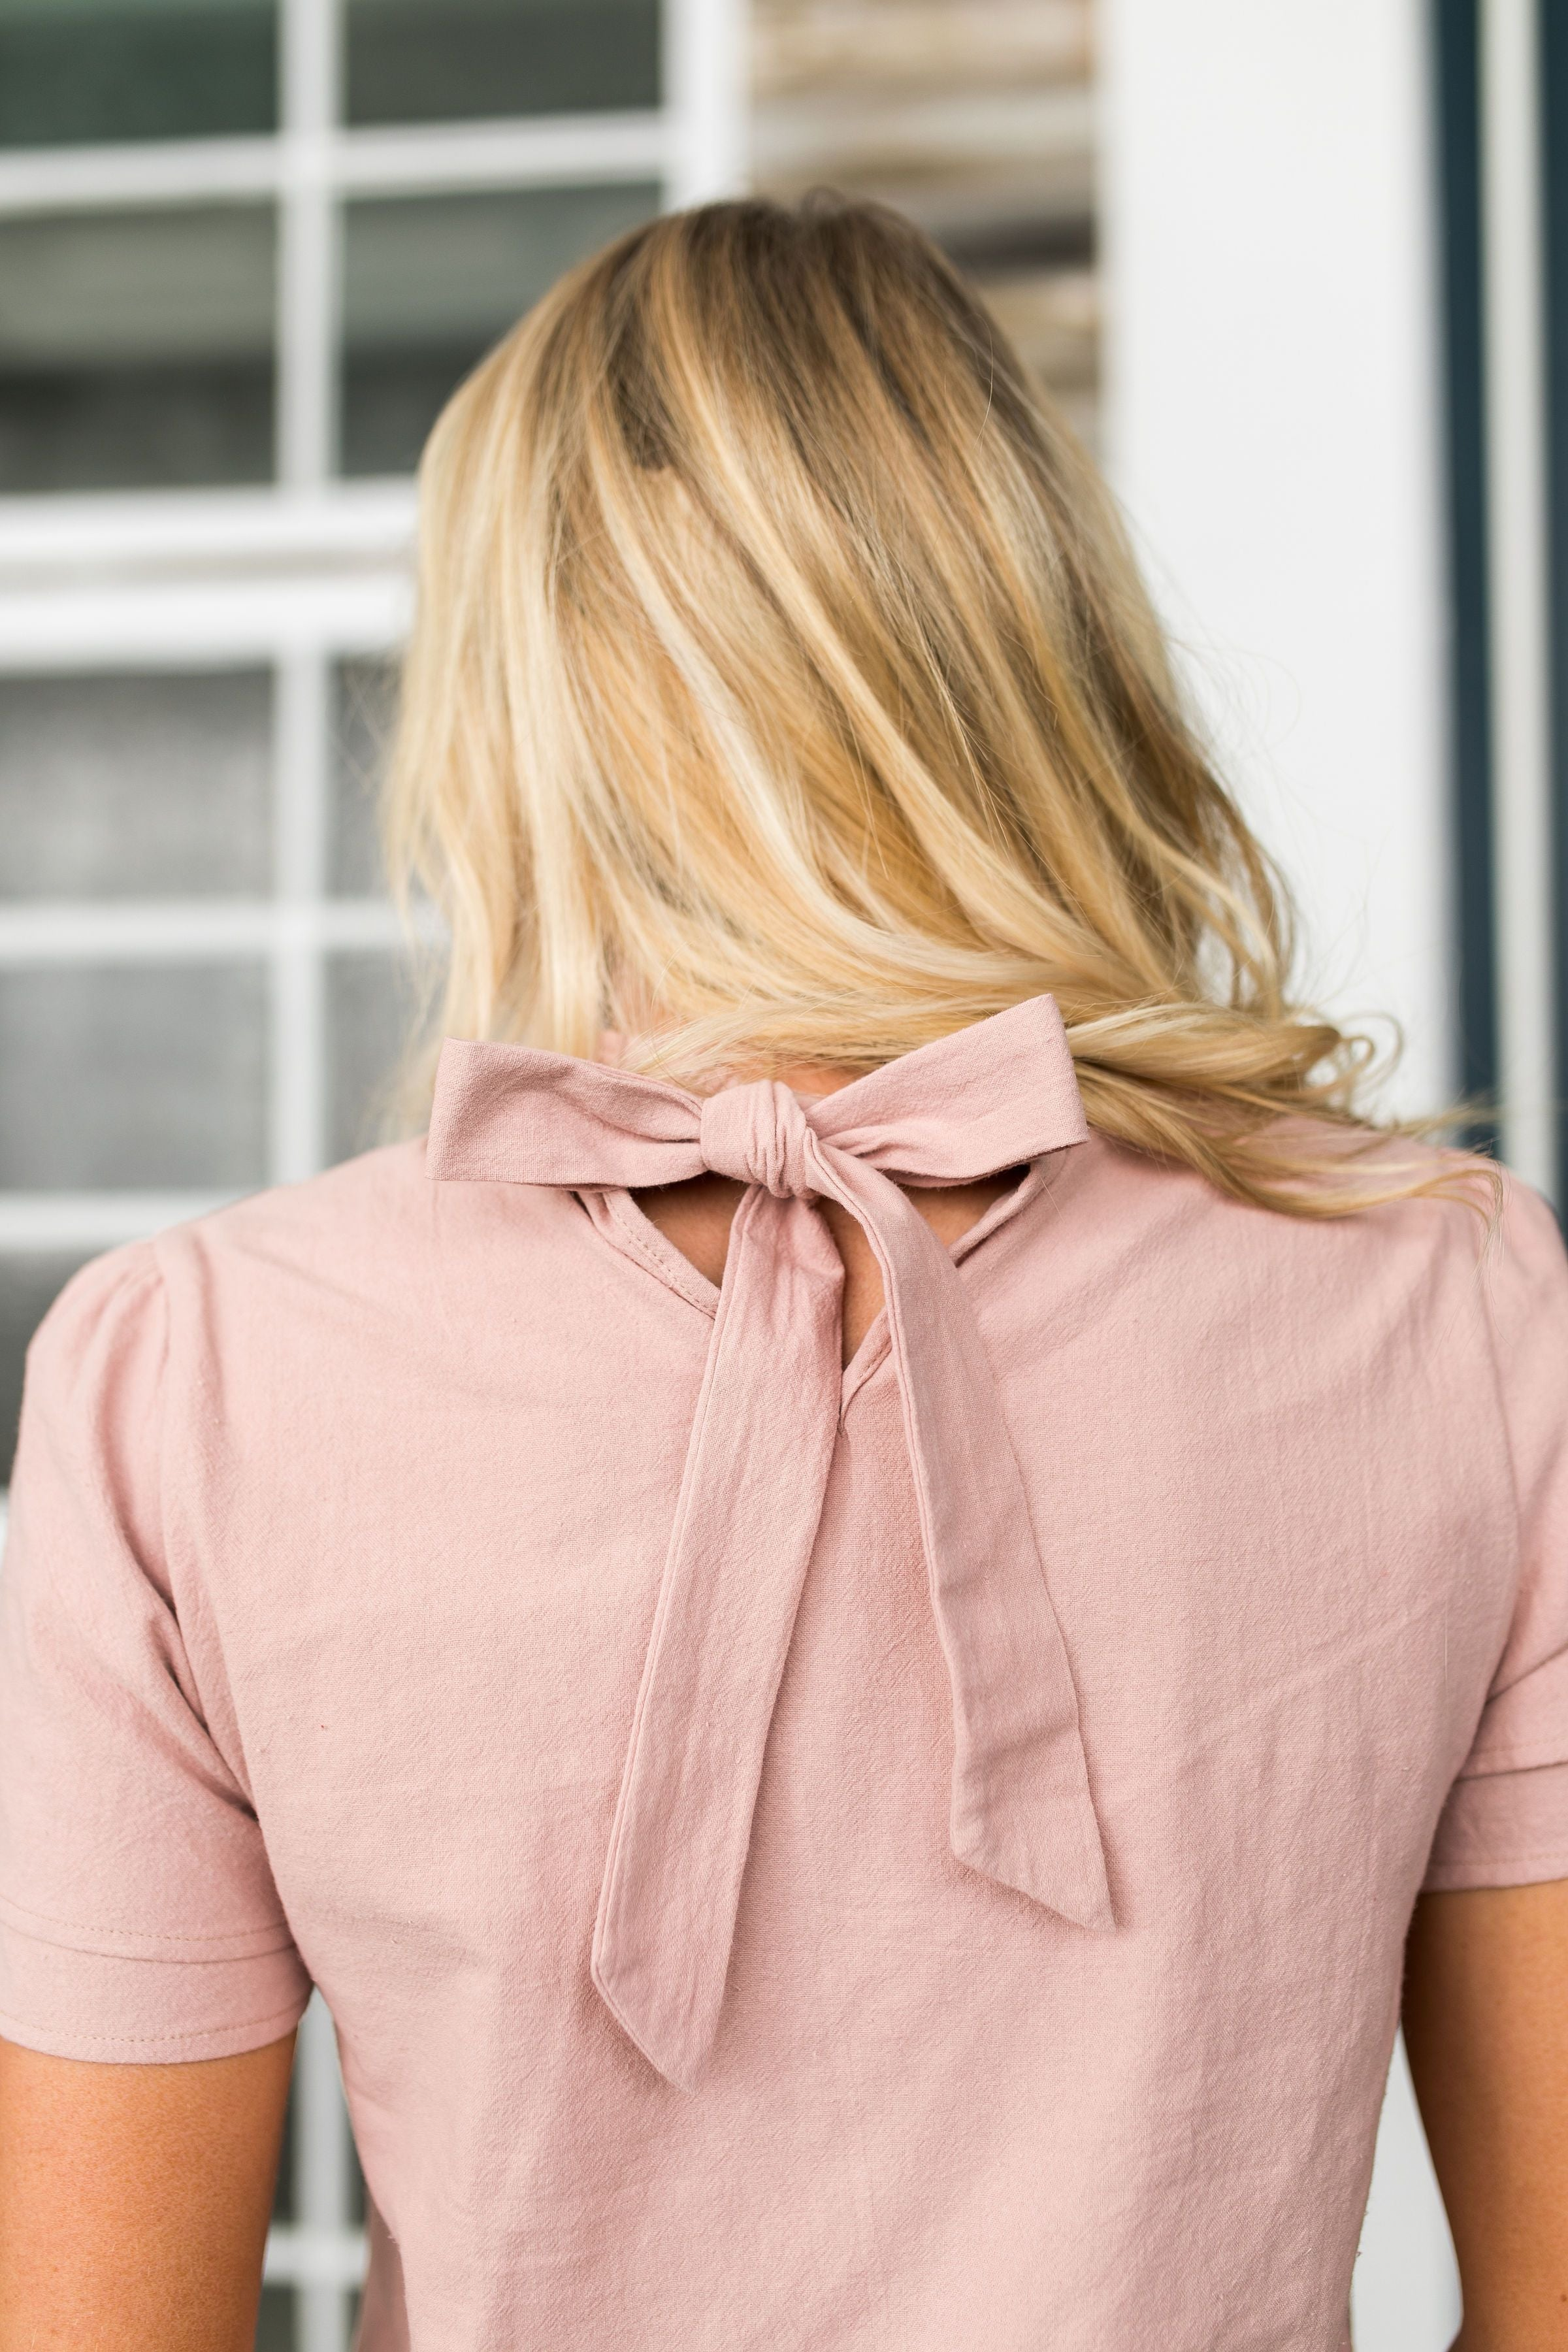 Tickled Pink Tie Back Detail Top - ALL SALES FINAL